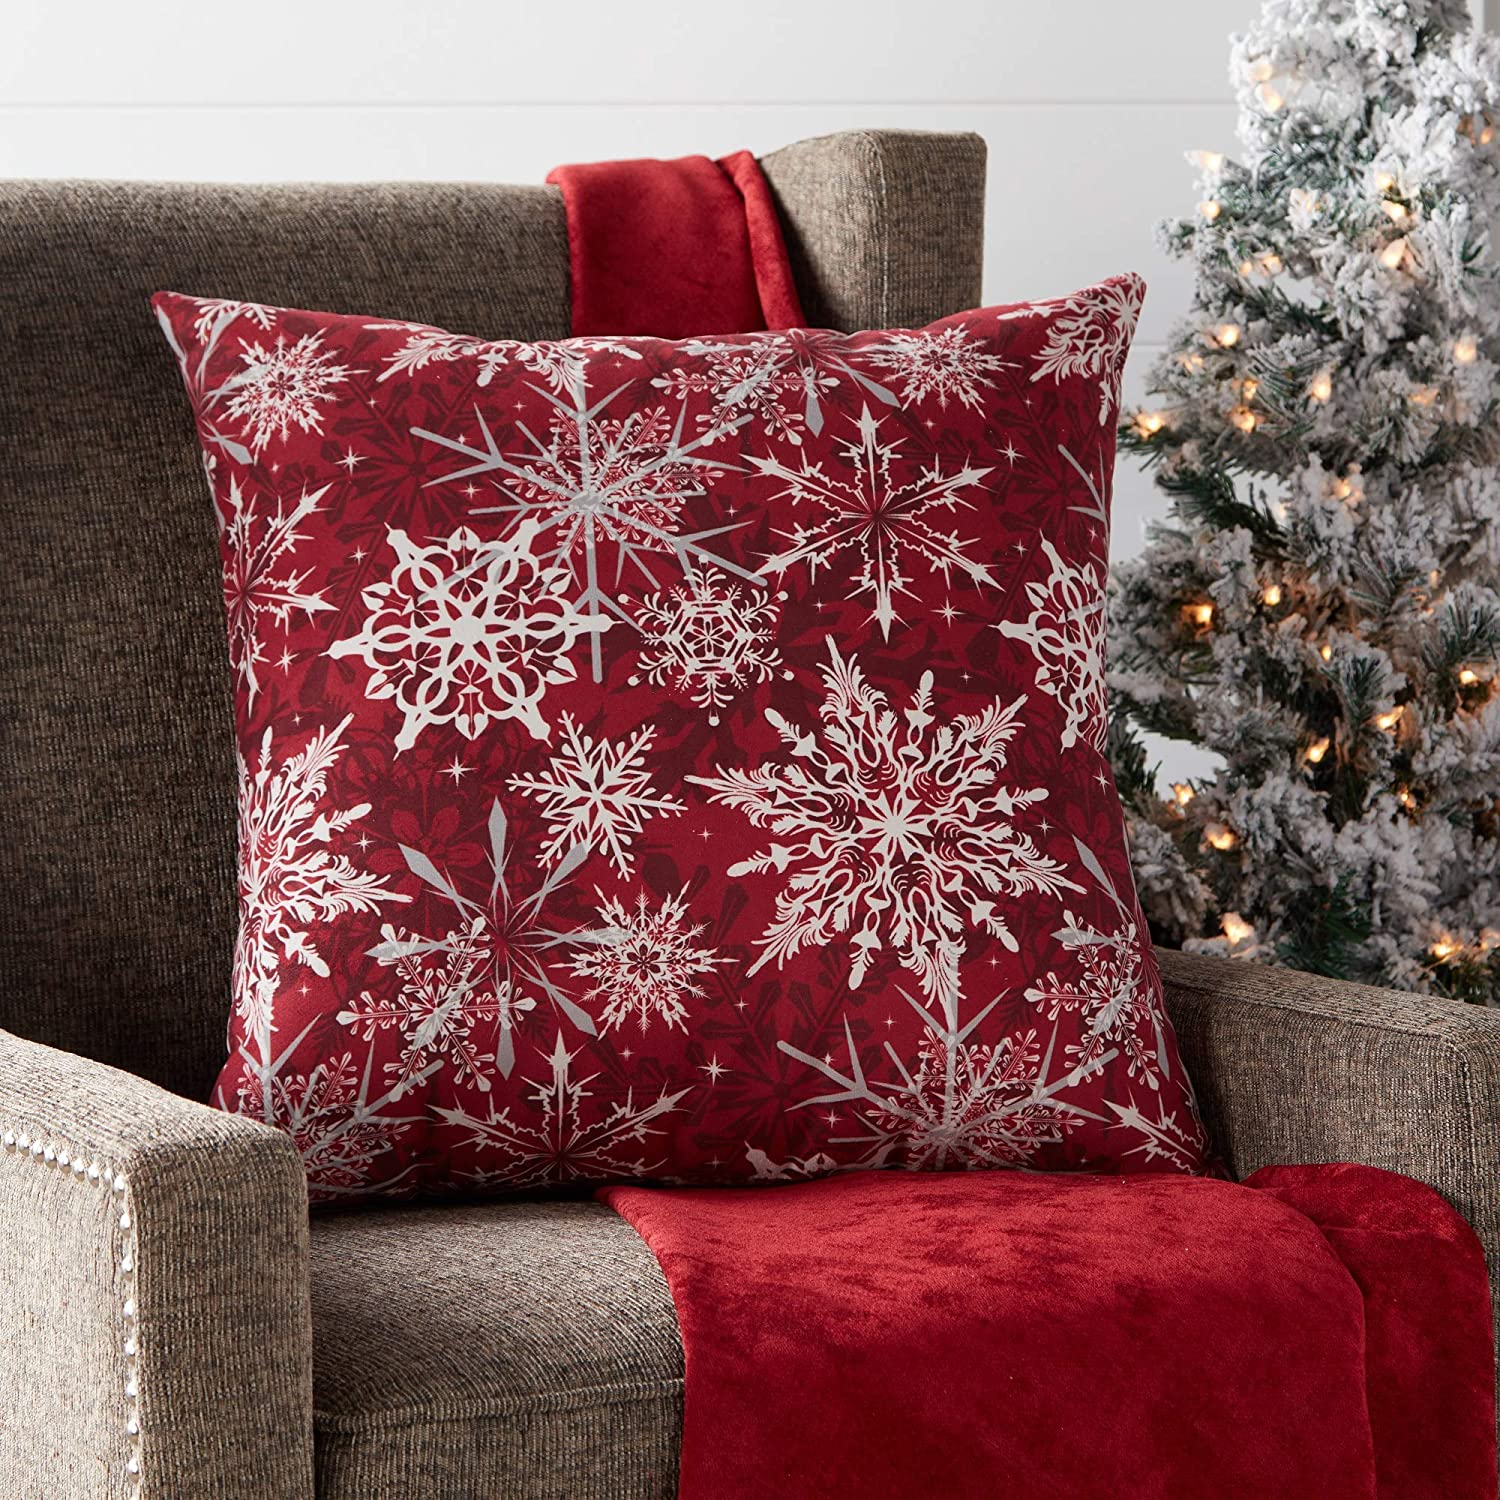 "Greendale Home Fashions Snowflakes 18"" Square Holiday Throw Pillow, Red"